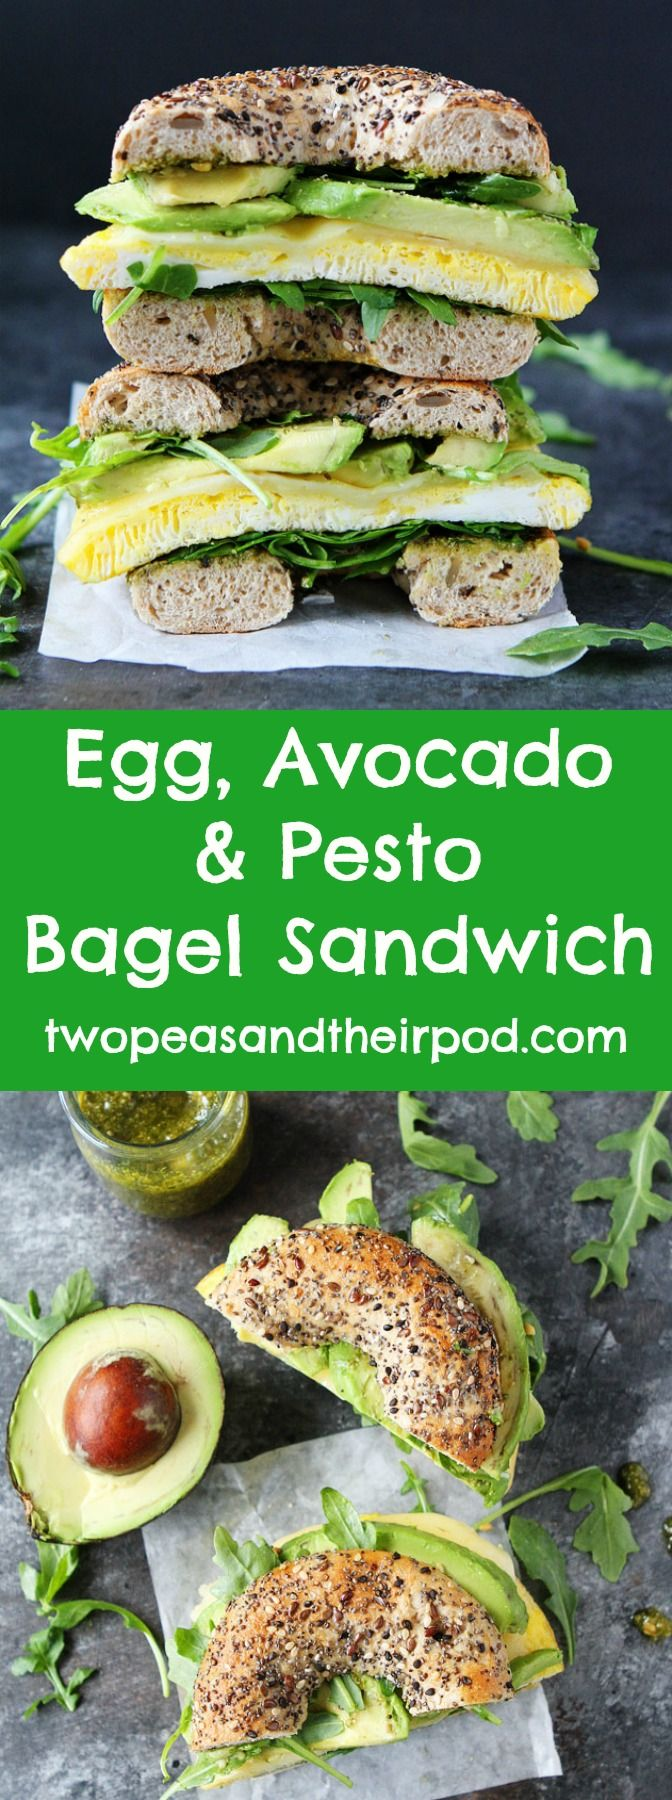 This Egg, Avocado, and Pesto Bagel Sandwich is easy to make and is full of flavor! It makes a great breakfast or lunch.